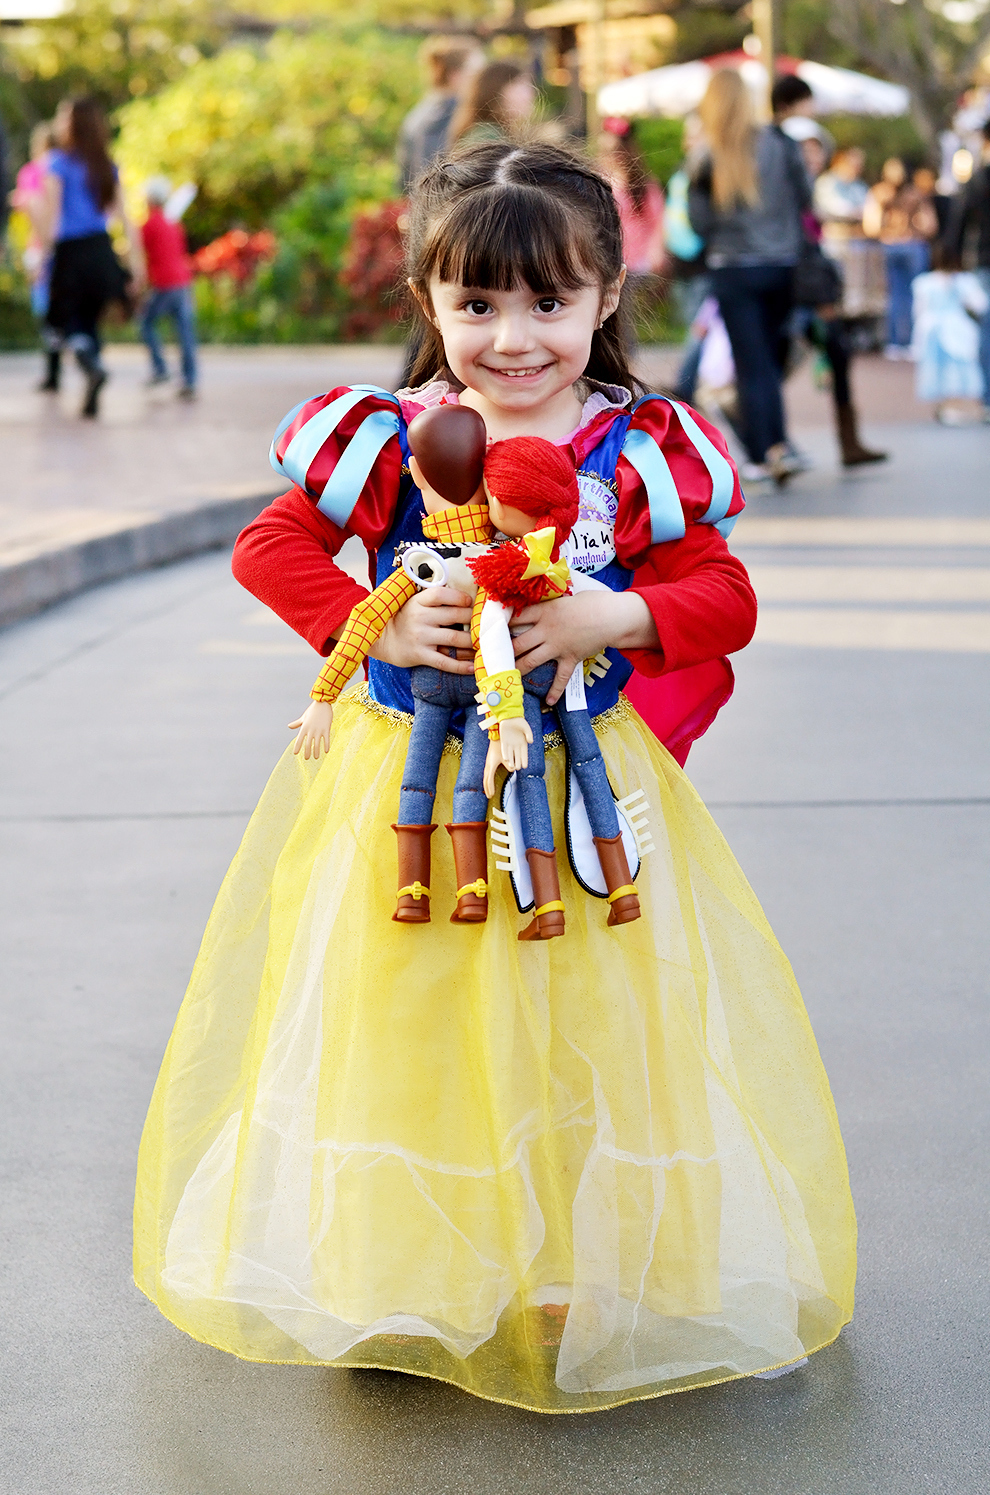 13 Of The Most Adorable Little Princesses At Disneyland